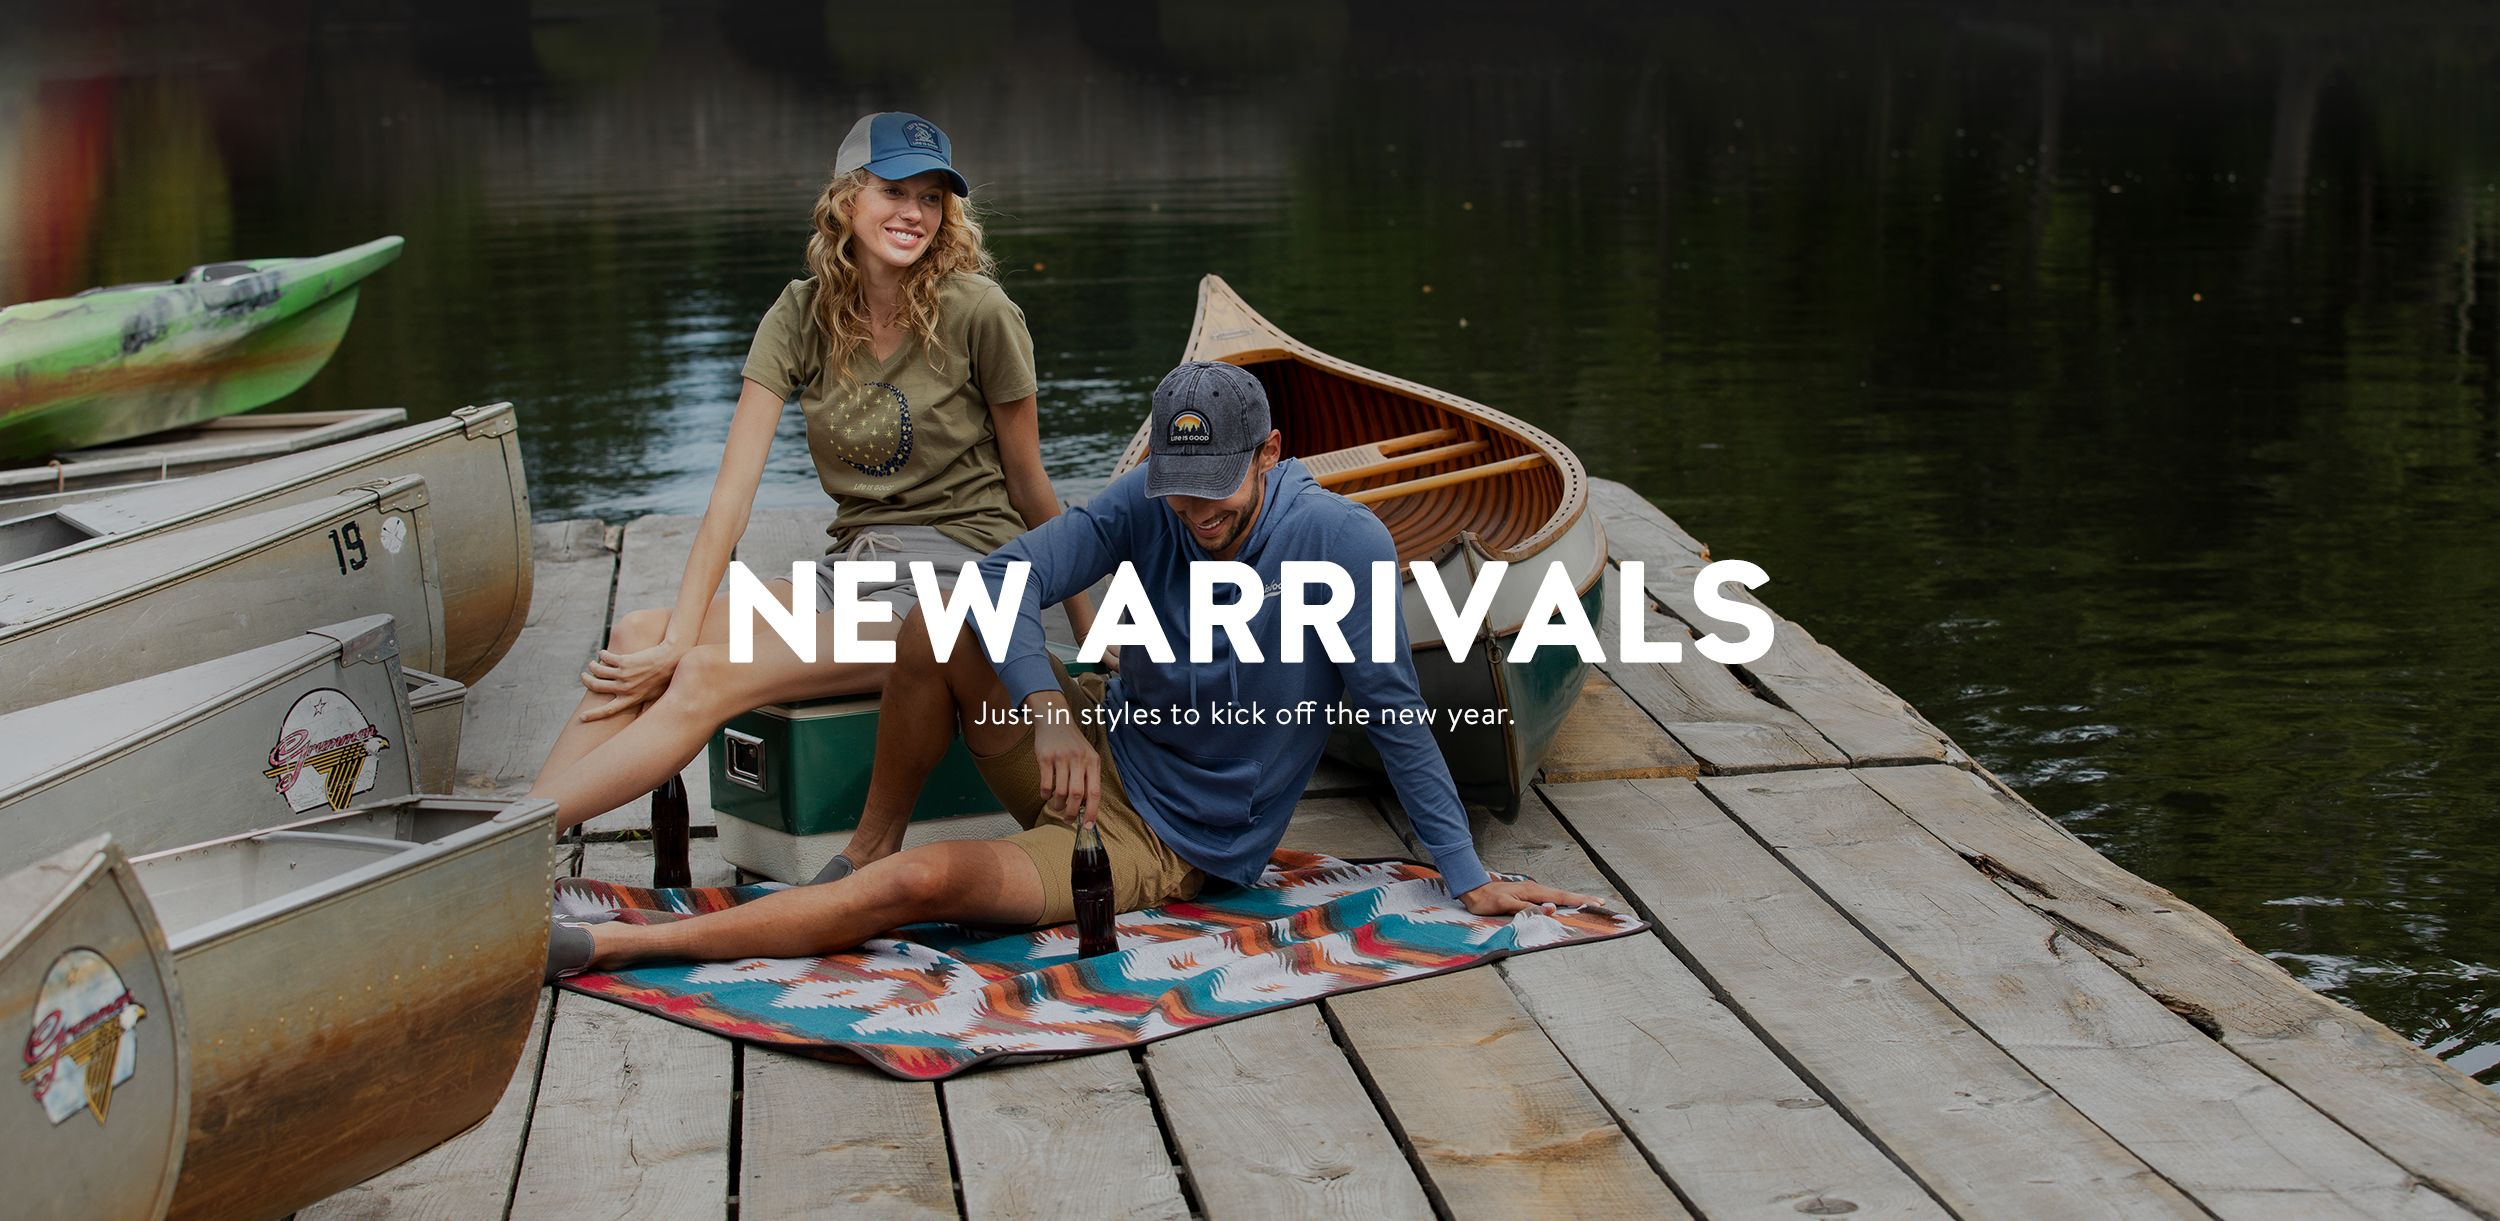 New Arrivals, Just-in styles to kick off the new year